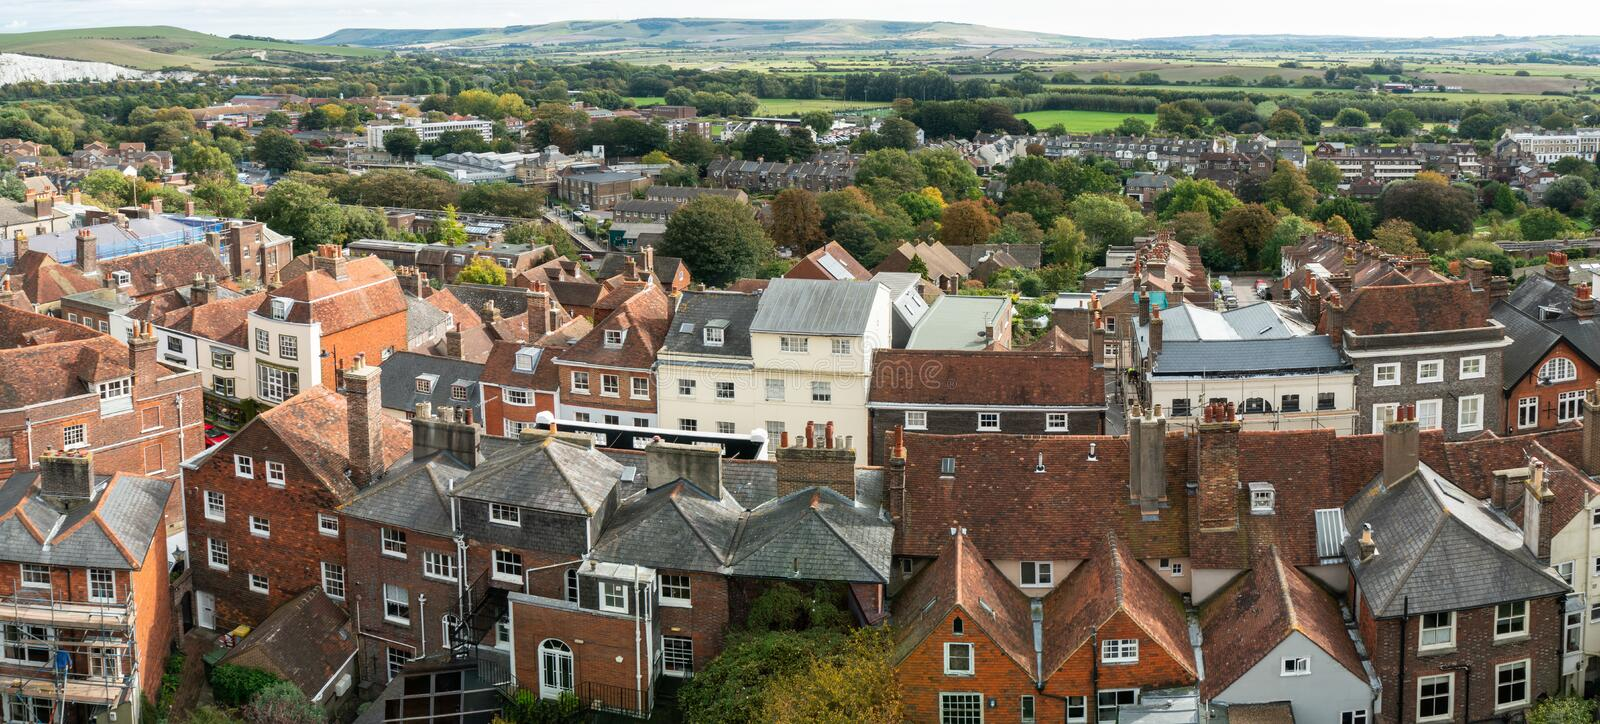 England landscape panorama of Lewes Castle, East Sussex county town in top view. The old vintage historical for visit, travel, learn and sightseeing royalty free stock images